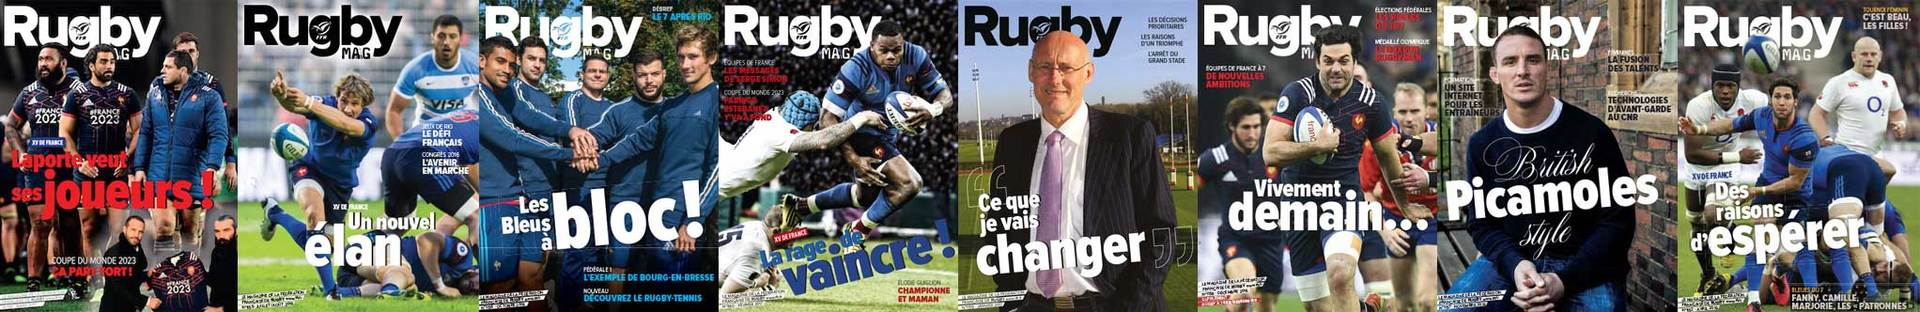 Couverturesrugby